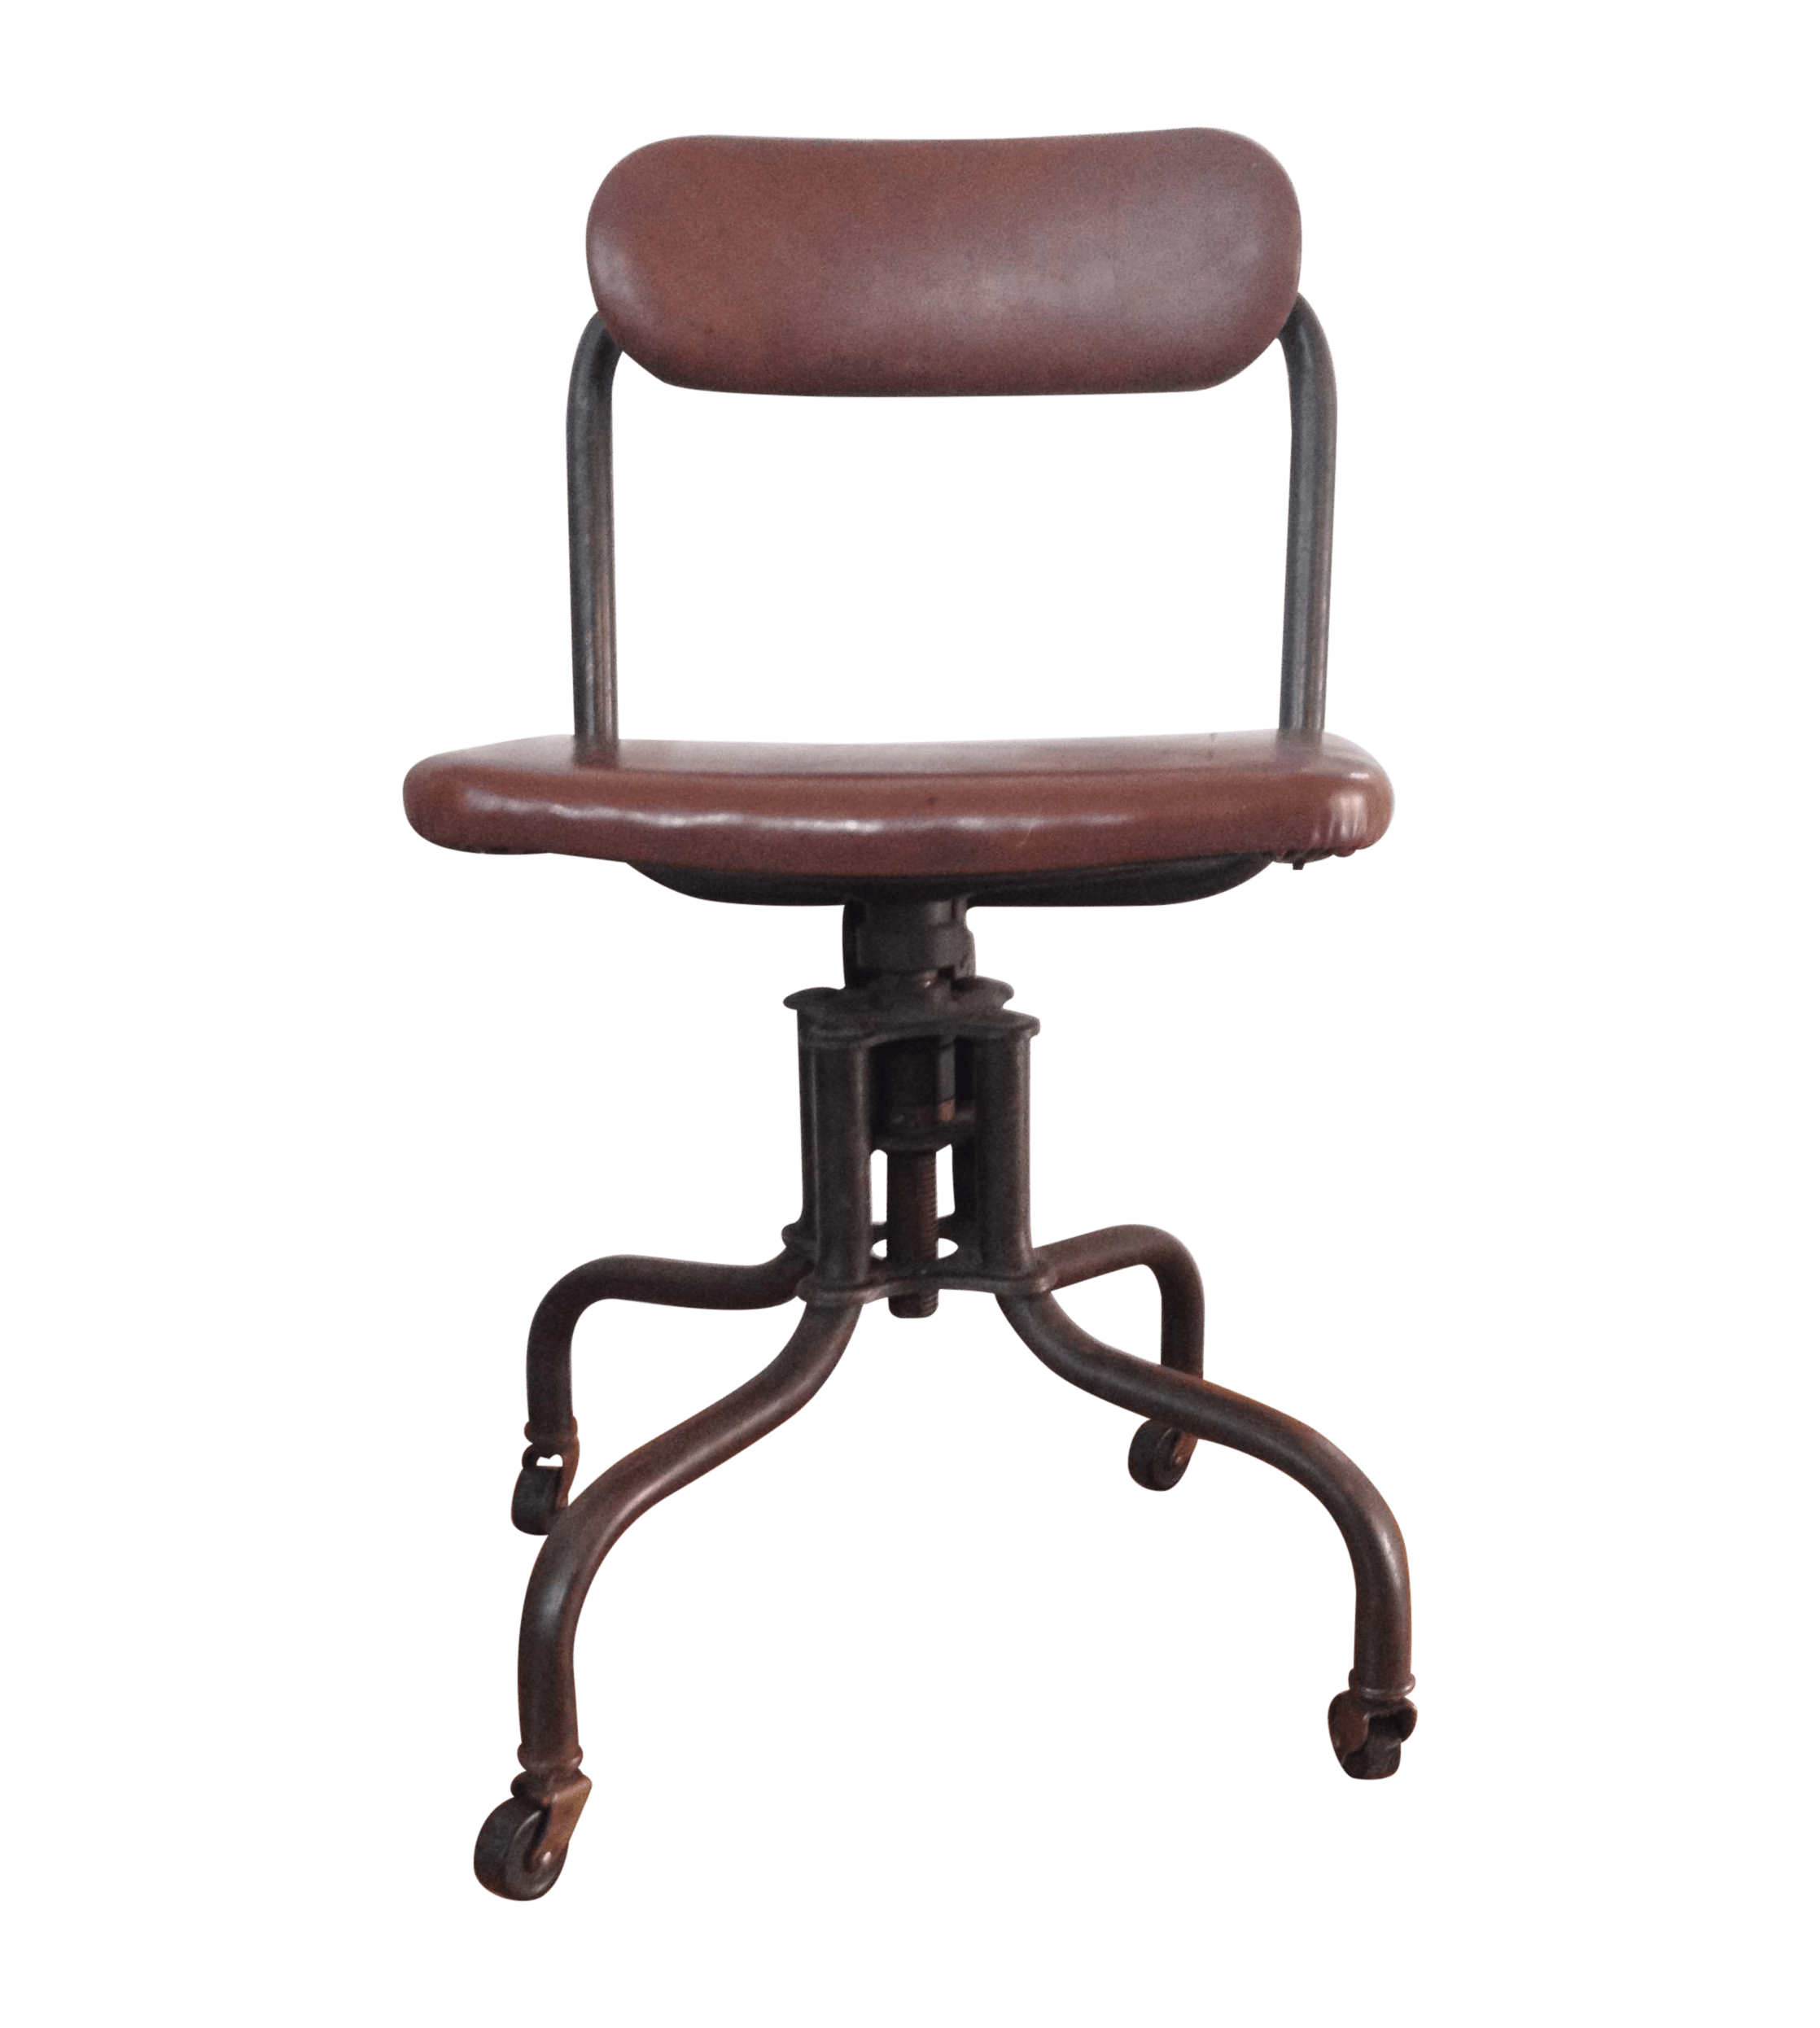 Industrial Look Chairs Industrial Age Toledo Style Typing Chair Chairish